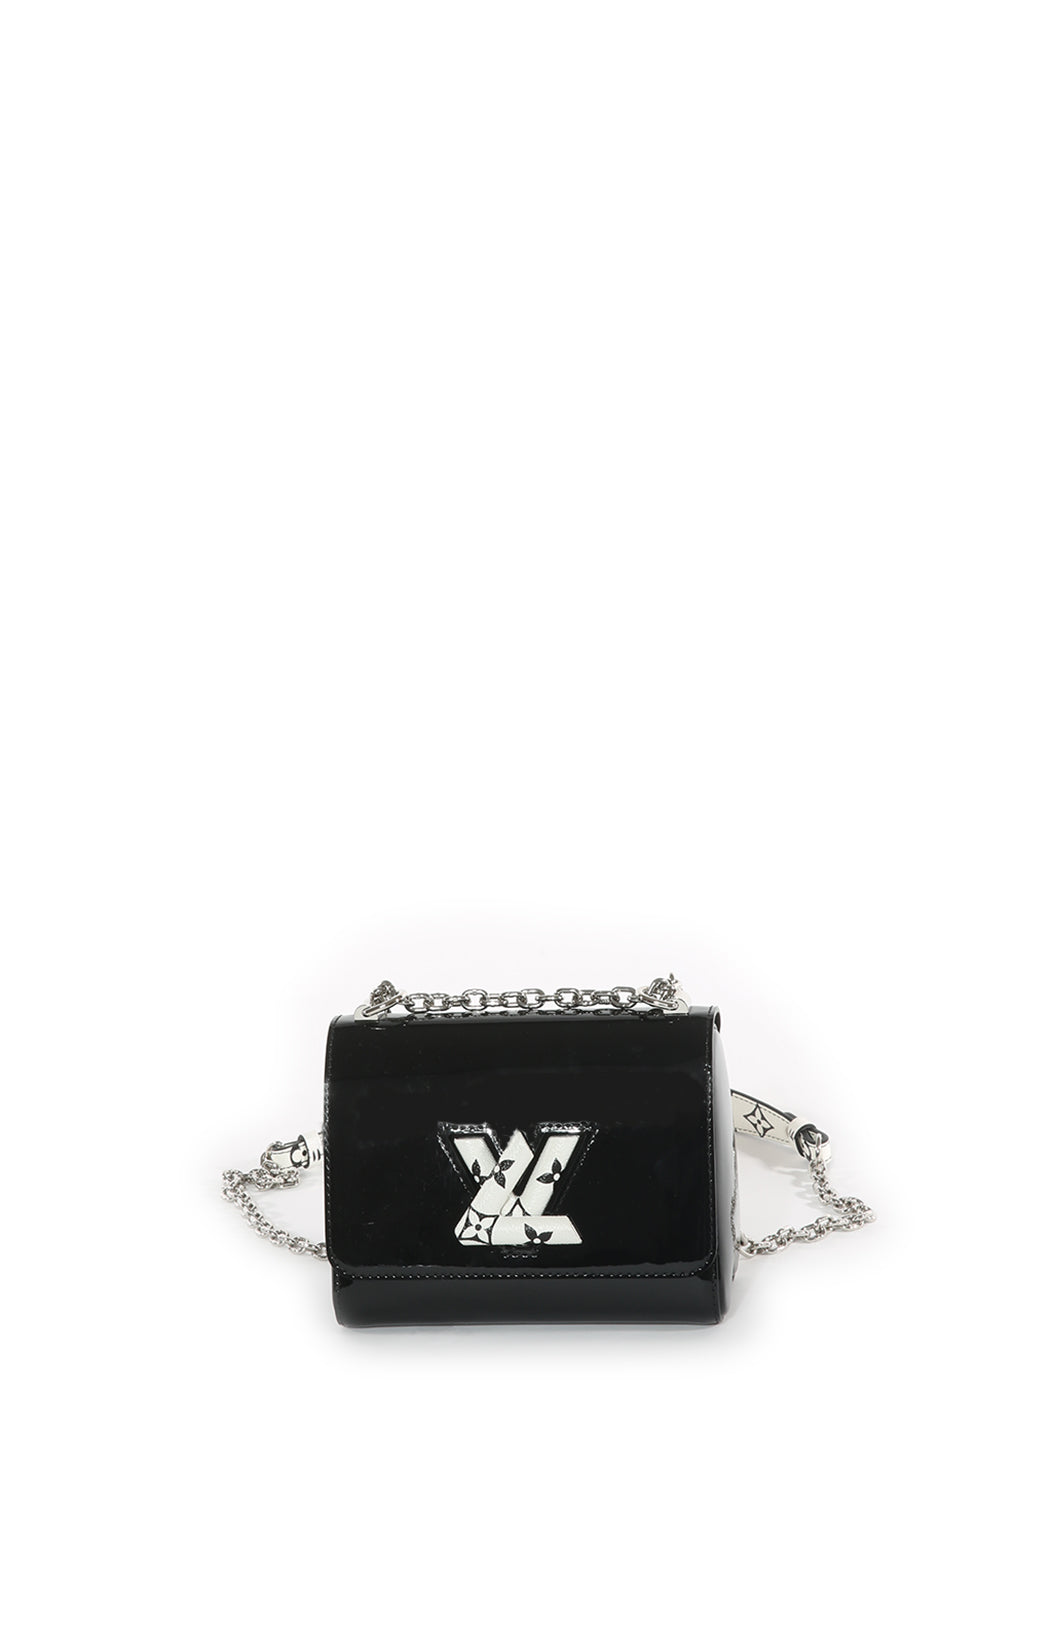 Front view of LOUIS VUITTON Handbag Size: 7.5 in x 6 in x 3.5 in